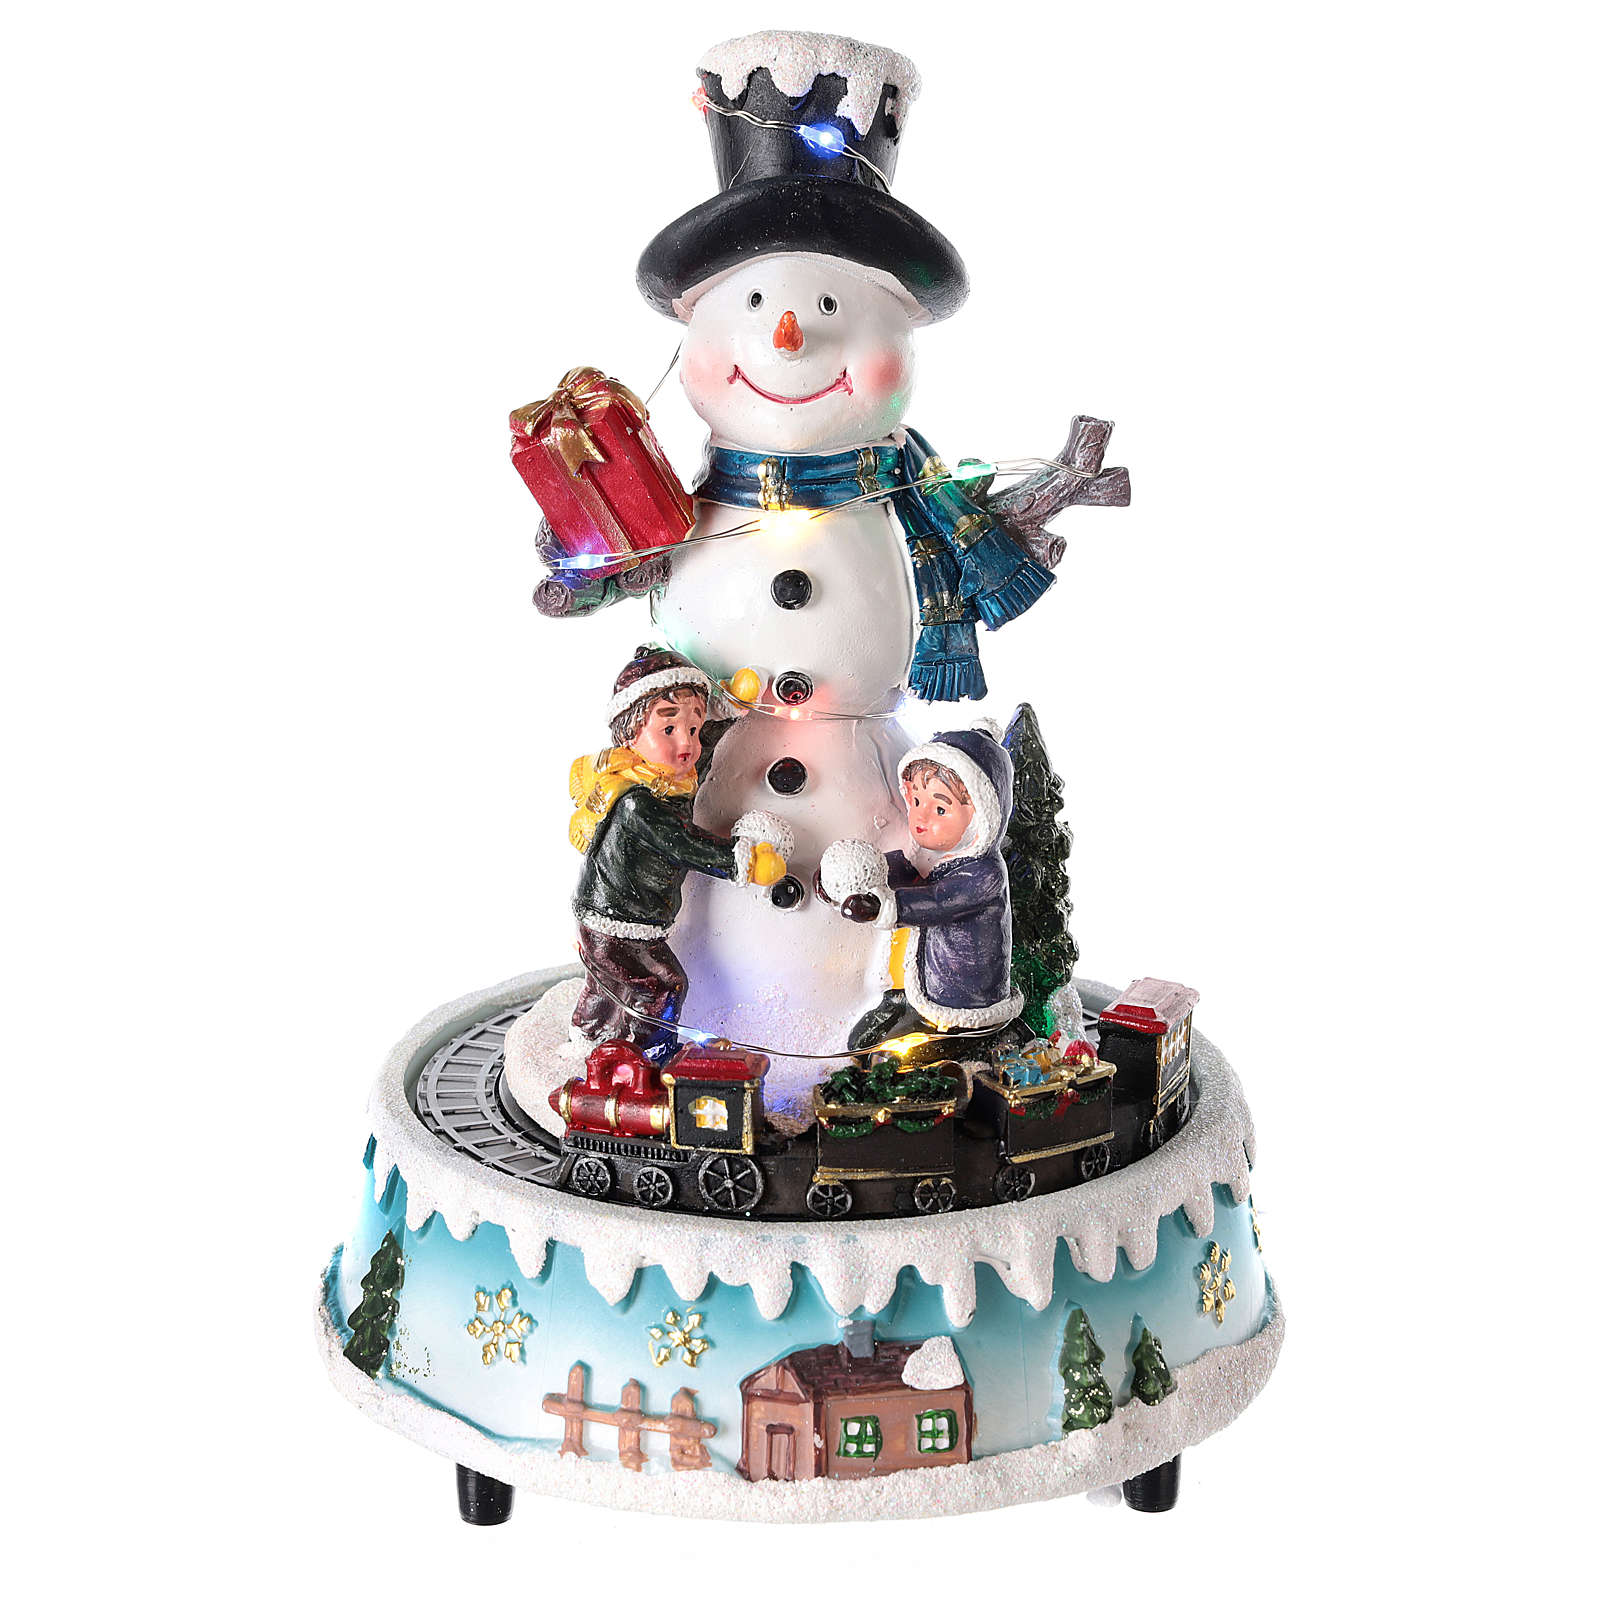 Snowman with gifts 15x20 cm 3